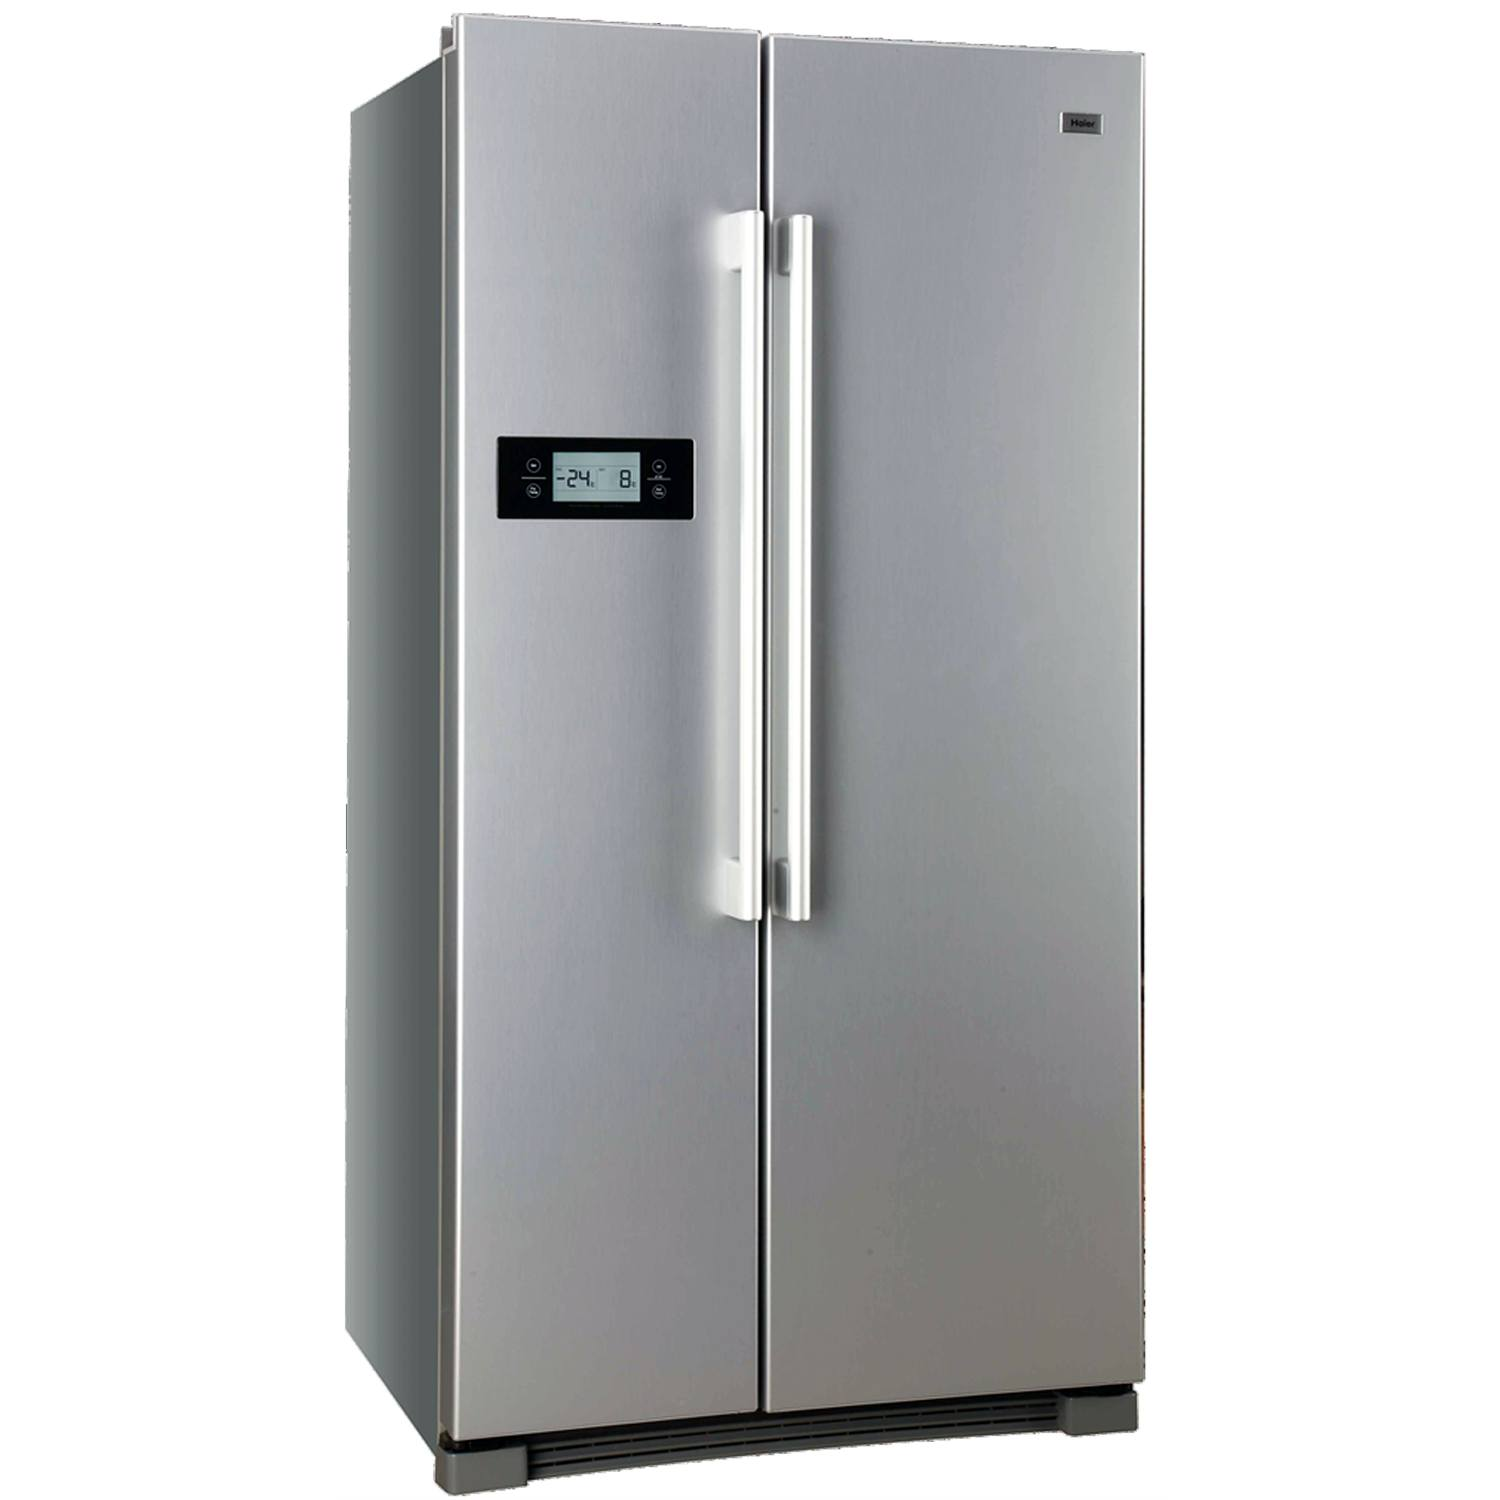 haier mini fridge parts. haier hrf628df6 free standing american style frost a+ fridge freezer silver £449.99 mini parts